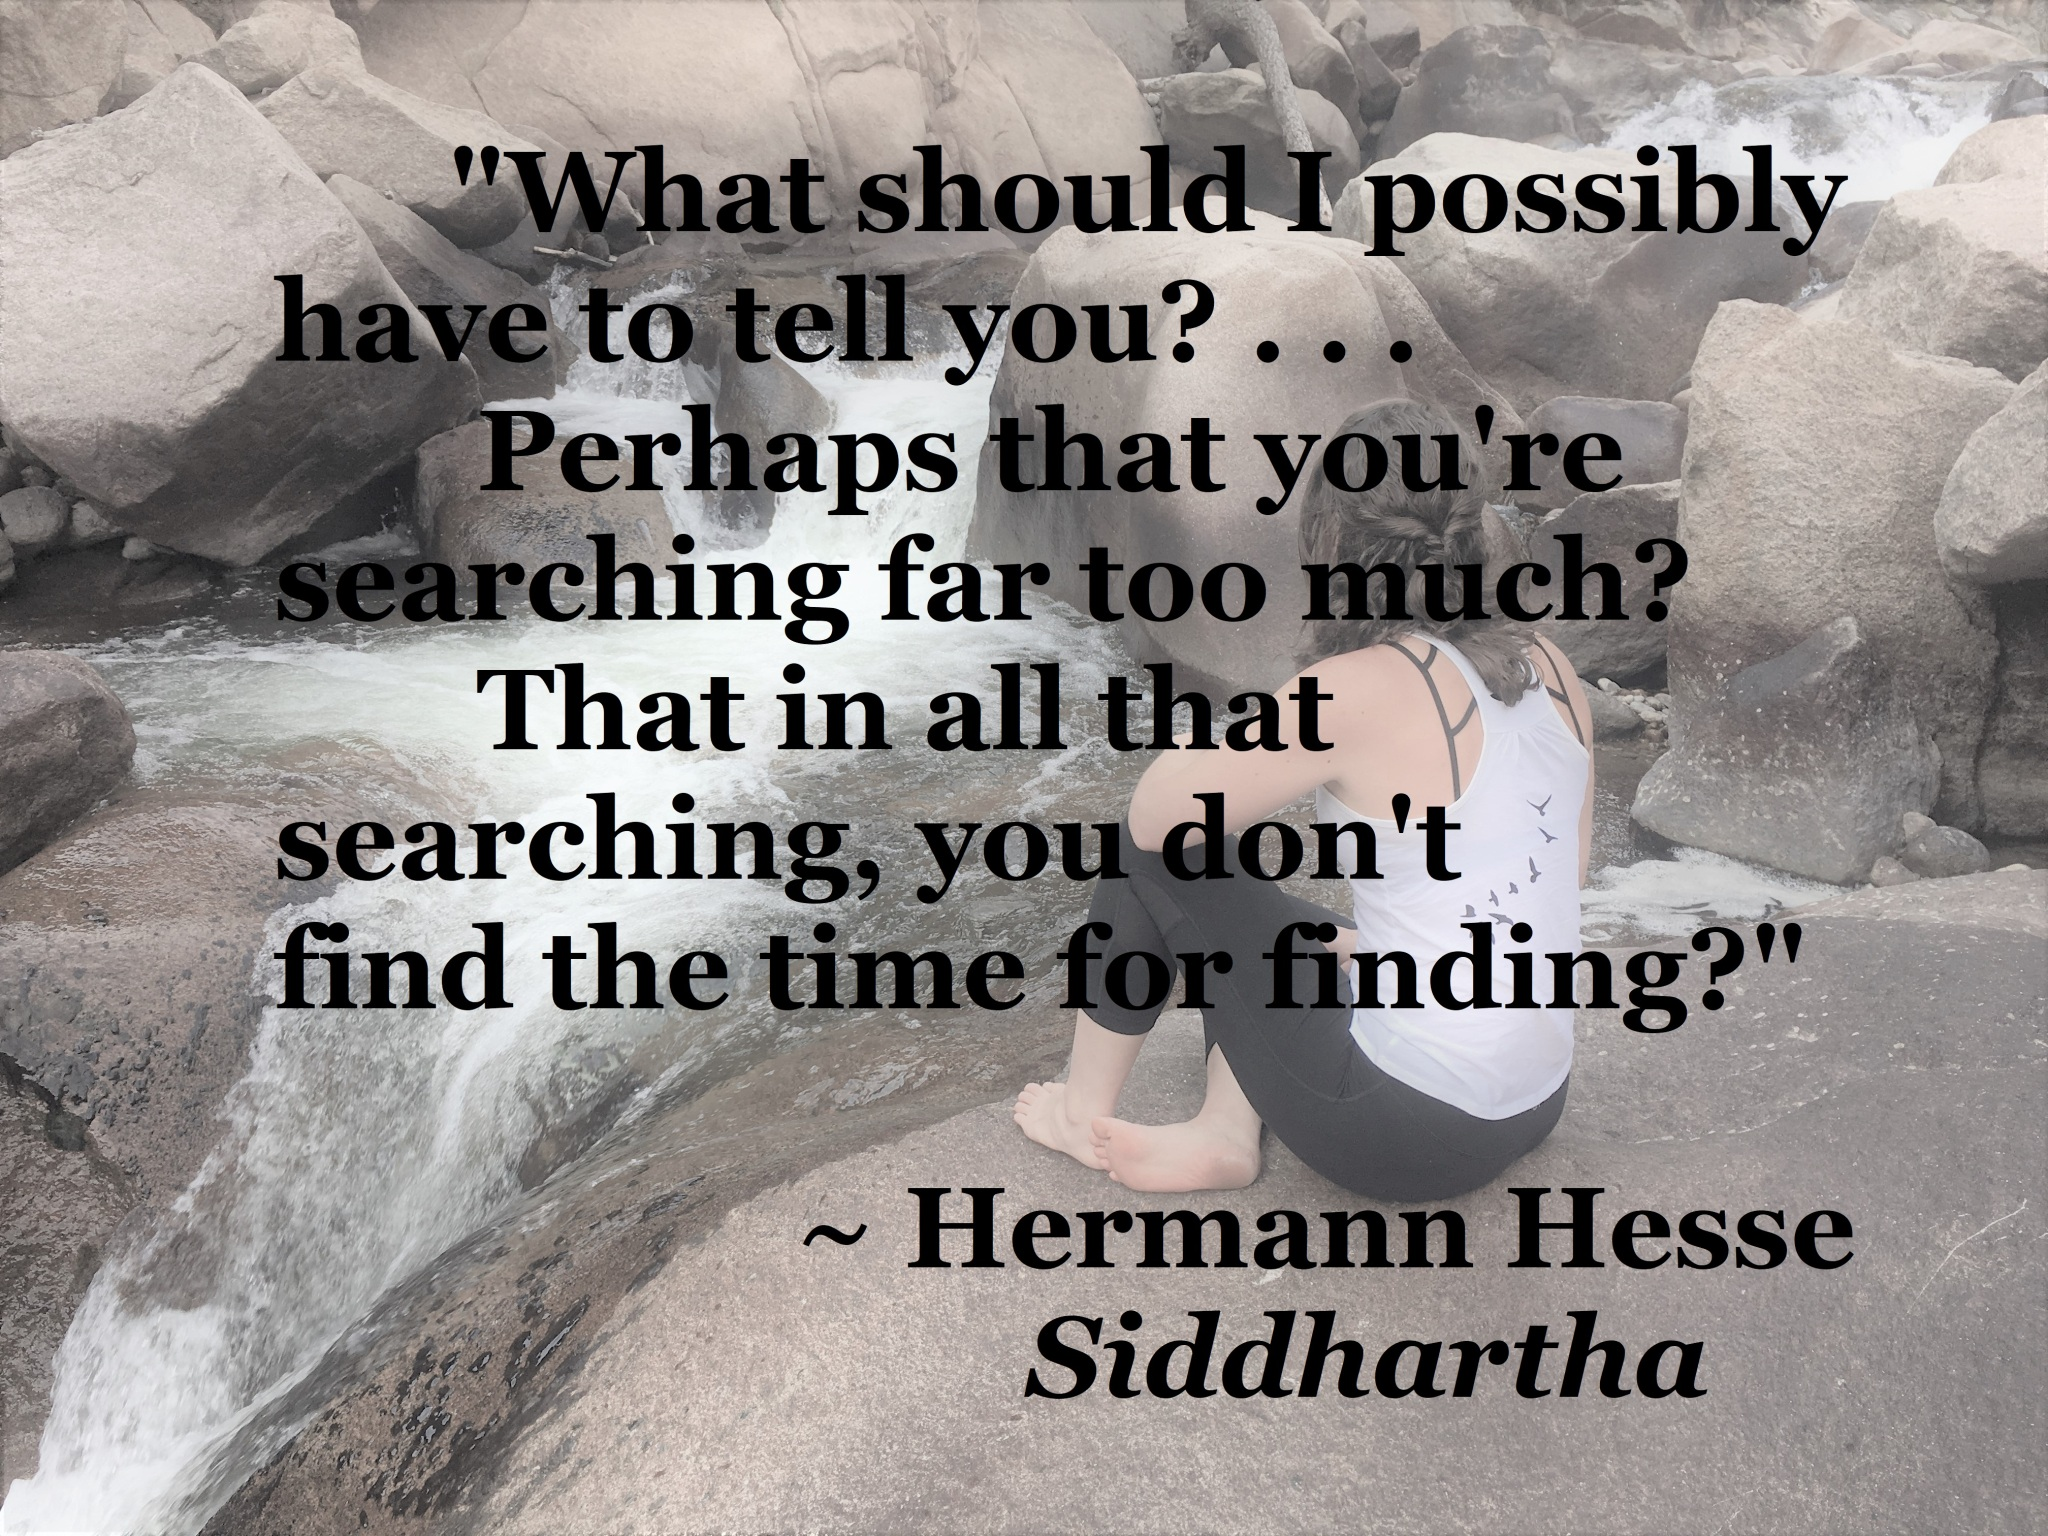 Hermann Hesse Siddhartha - too much searching for finding